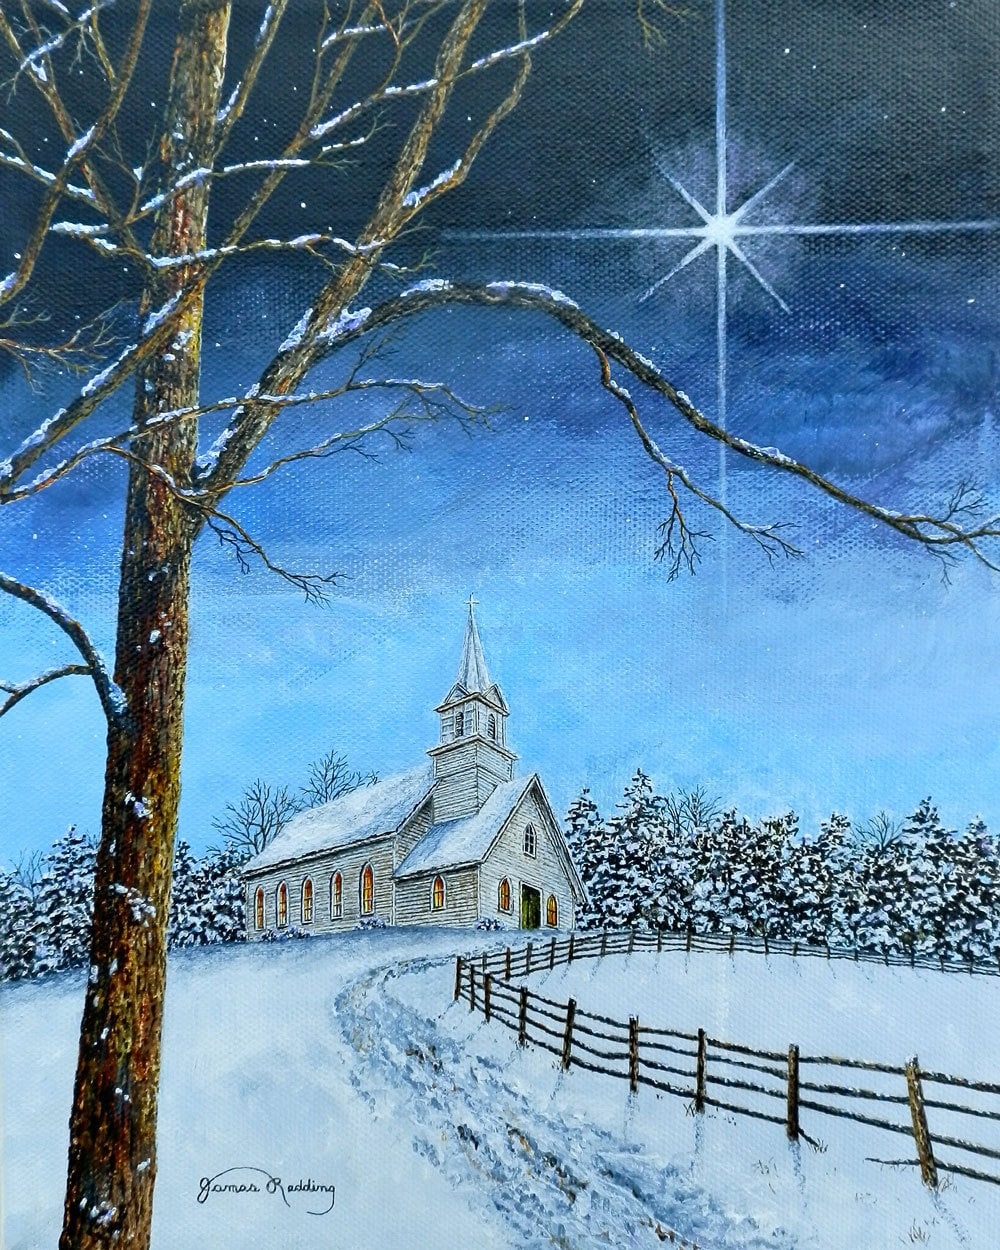 Star Painting Christmas Painting Church Painting Winter